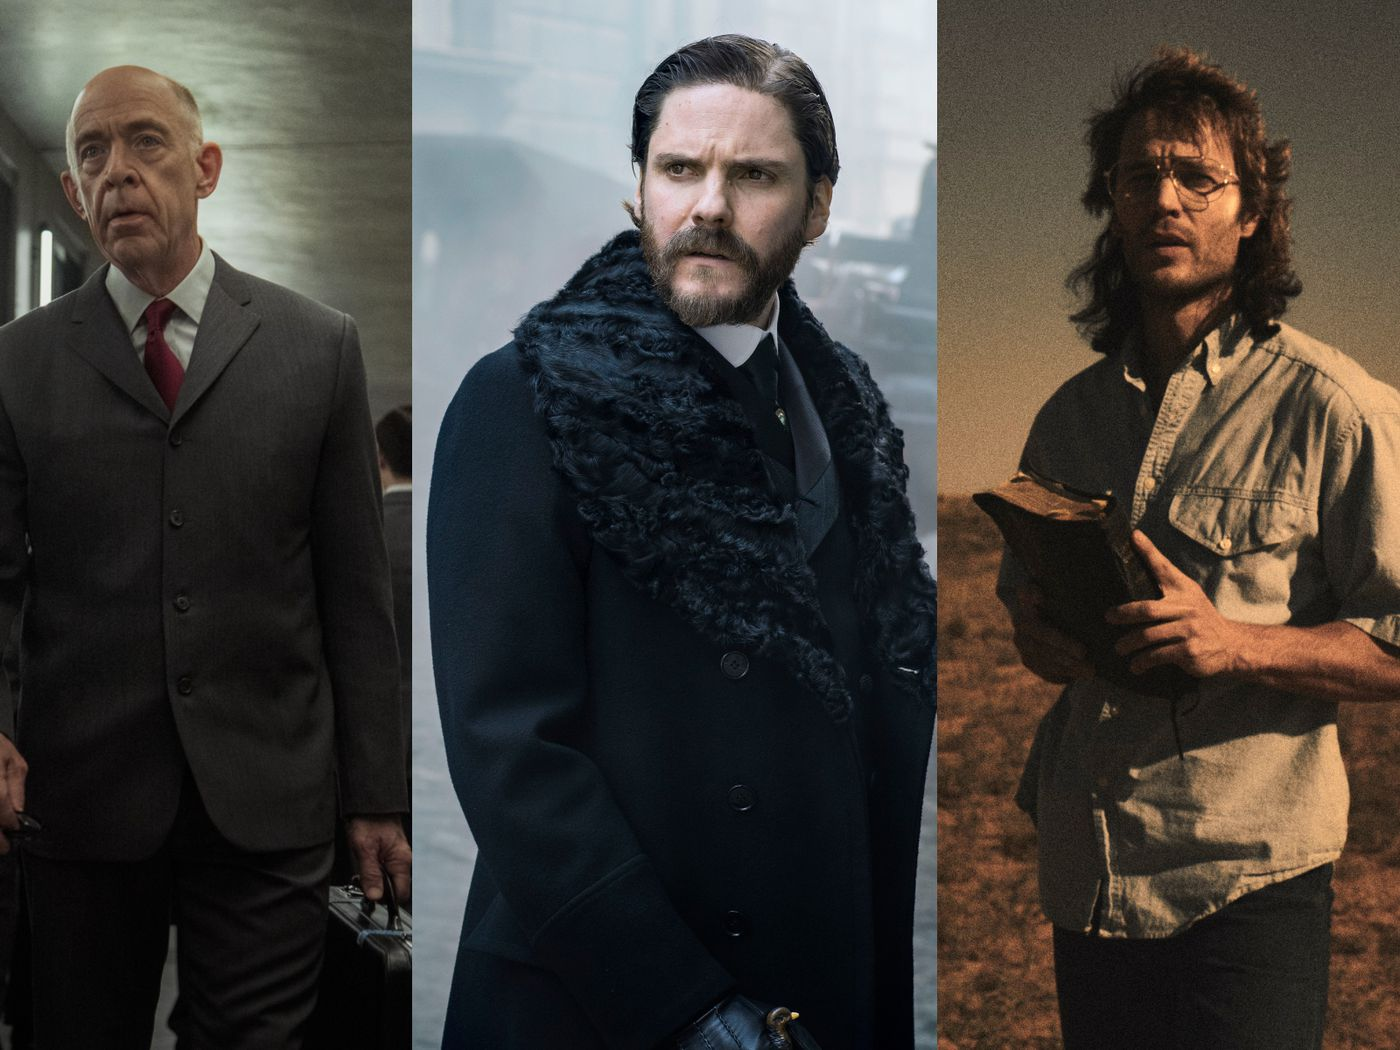 3 new TV dramas worth trying: Counterpart, The Alienist, and Waco - Vox